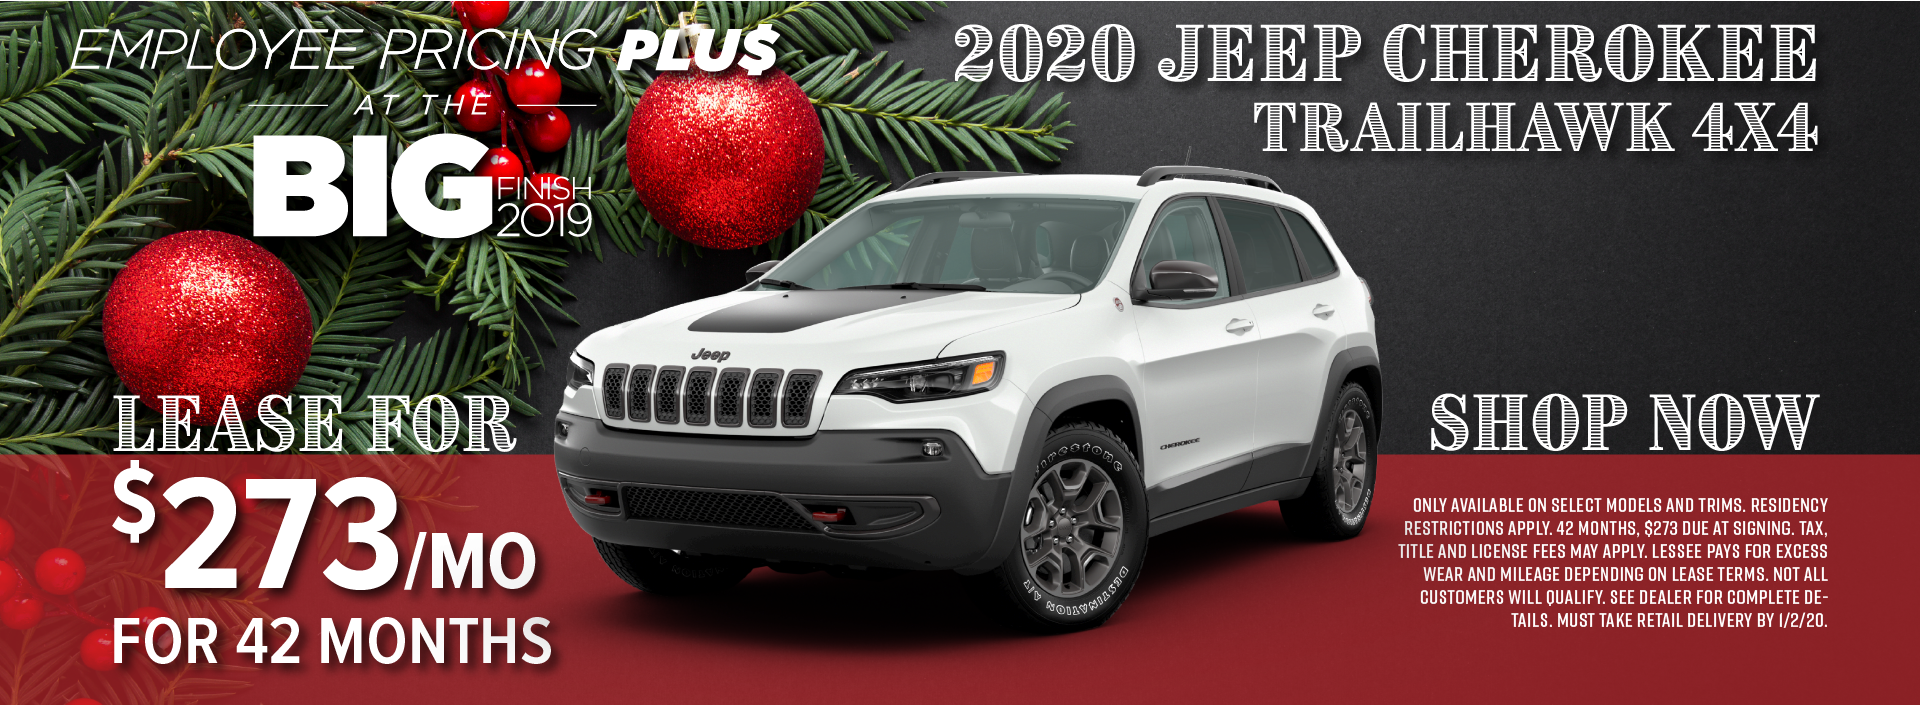 2020 Jeep Cherokee Special near Golden CO